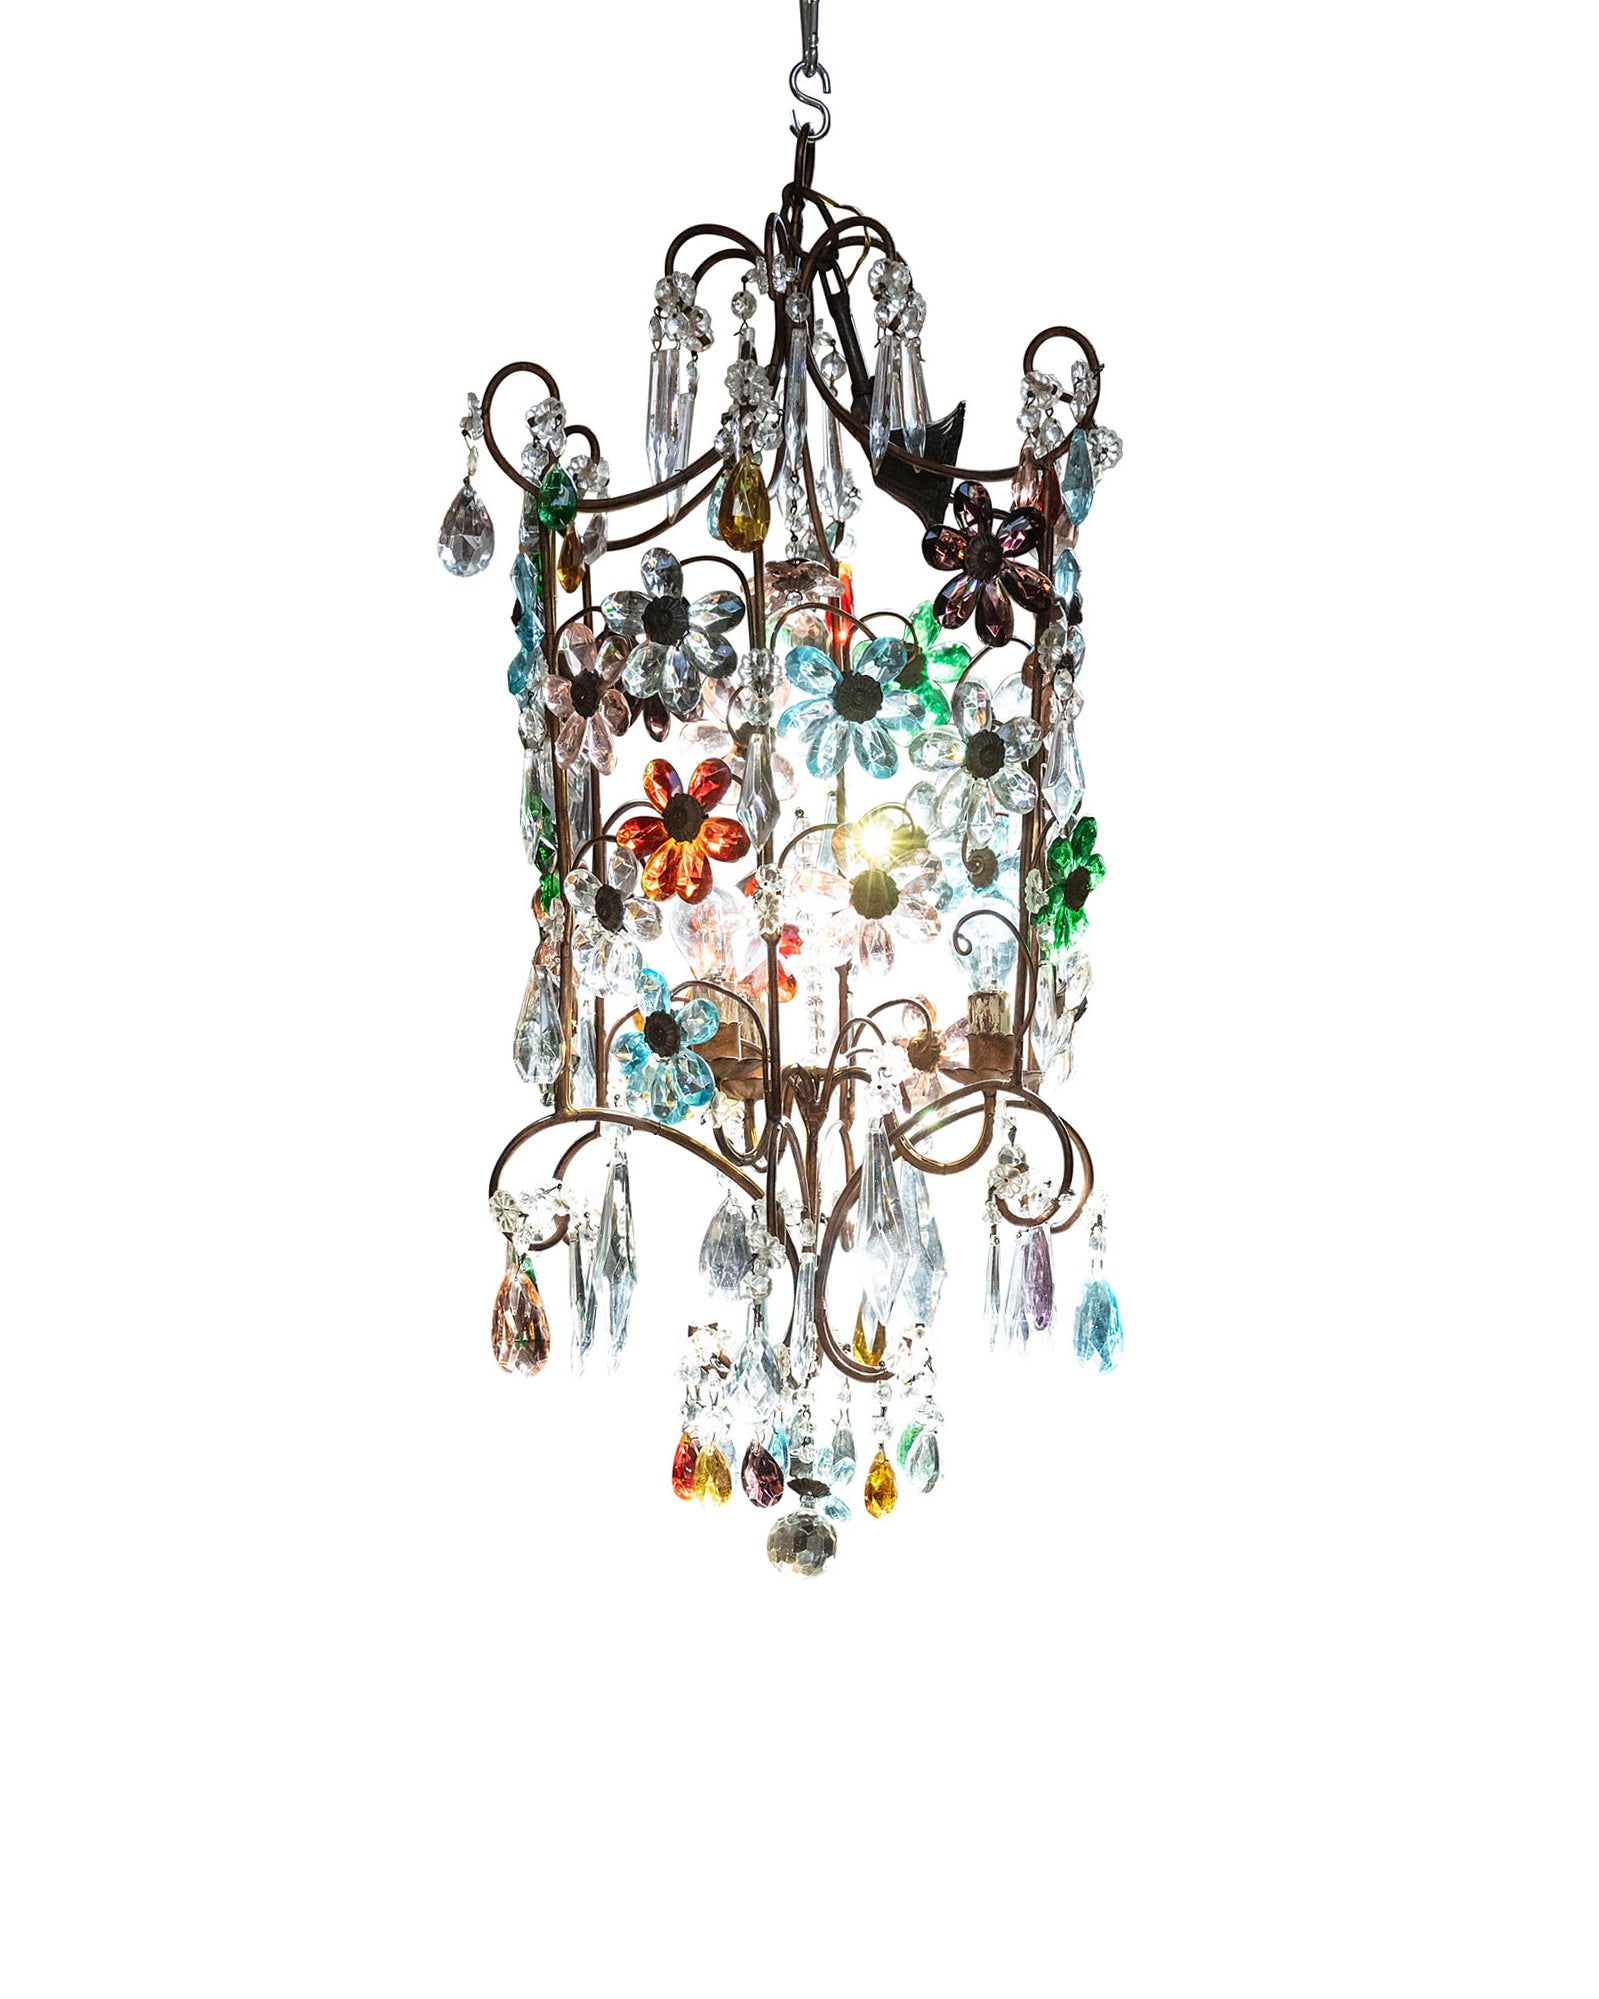 Chandelier with golden structure and crystal flowers in various colors